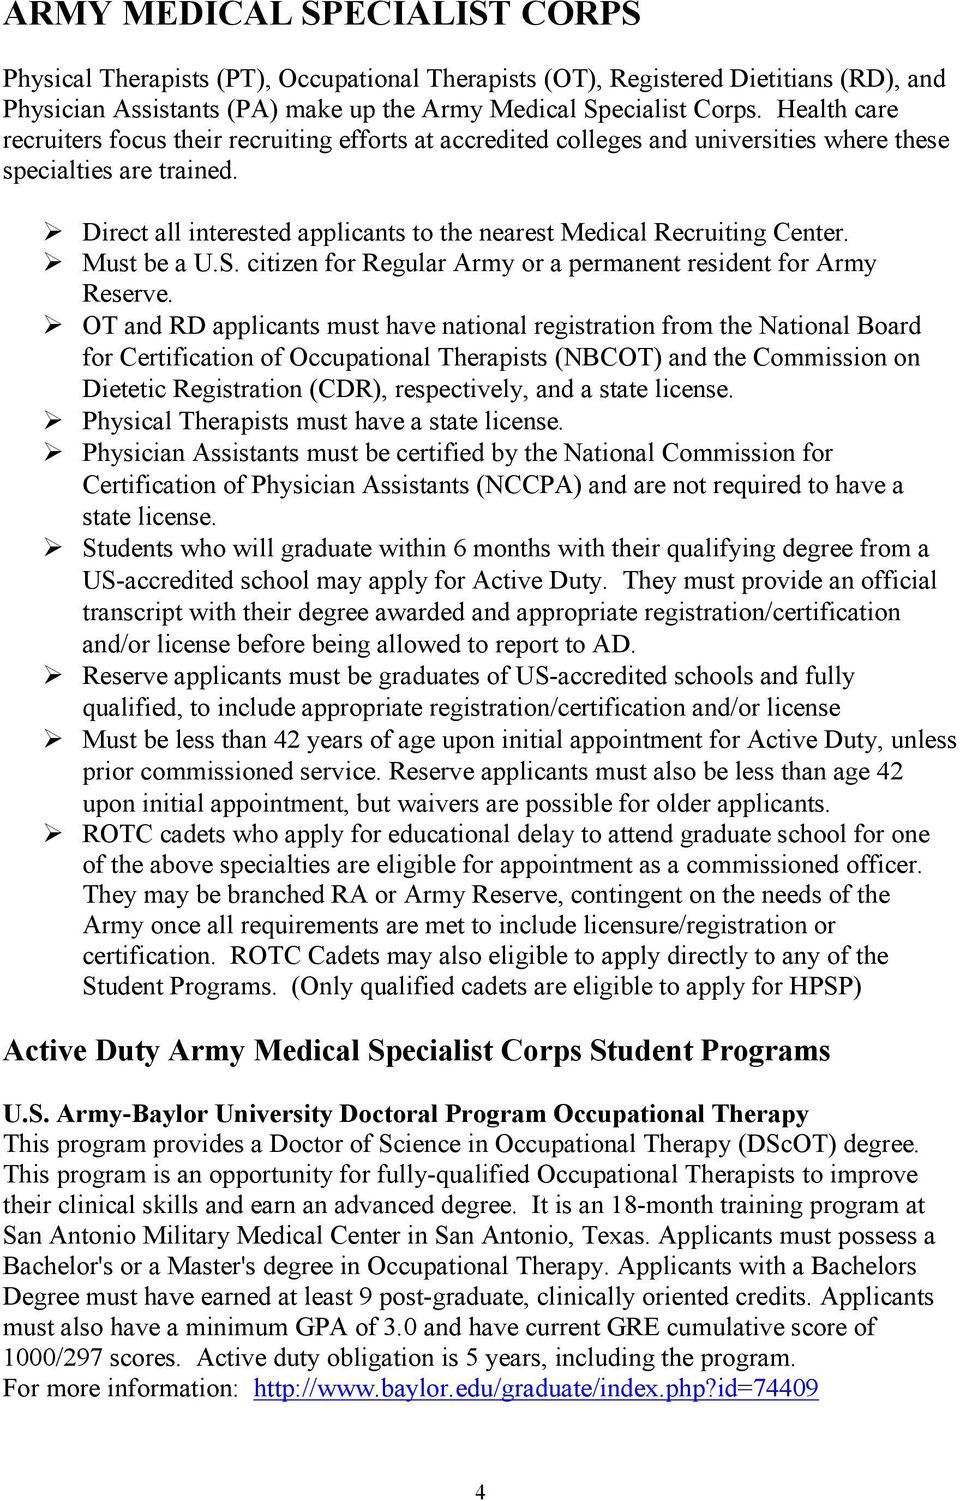 Direct all interested applicants to the nearest Medical Recruiting Center. Must be a U.S. citizen for Regular Army or a permanent resident for Army Reserve.